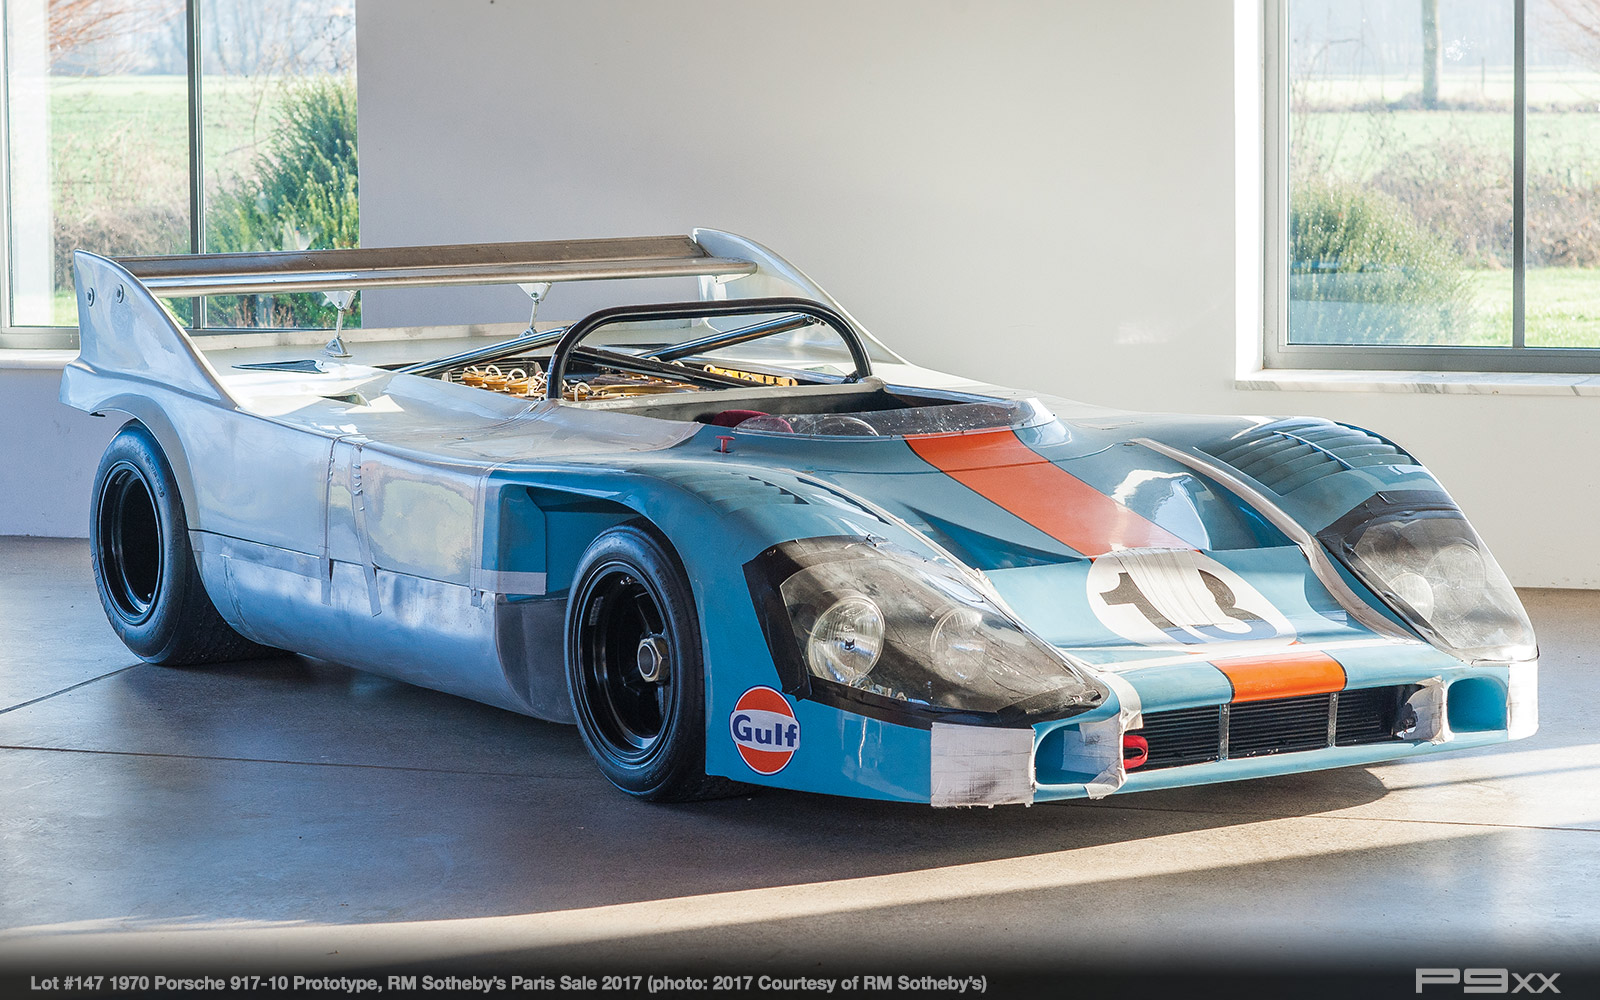 porsche 917  10 prototype planned for rm sotheby u2019s paris sale p9xx 2008 Can-Am Spyder Windshield 2008 Can-Am Spyder Problems